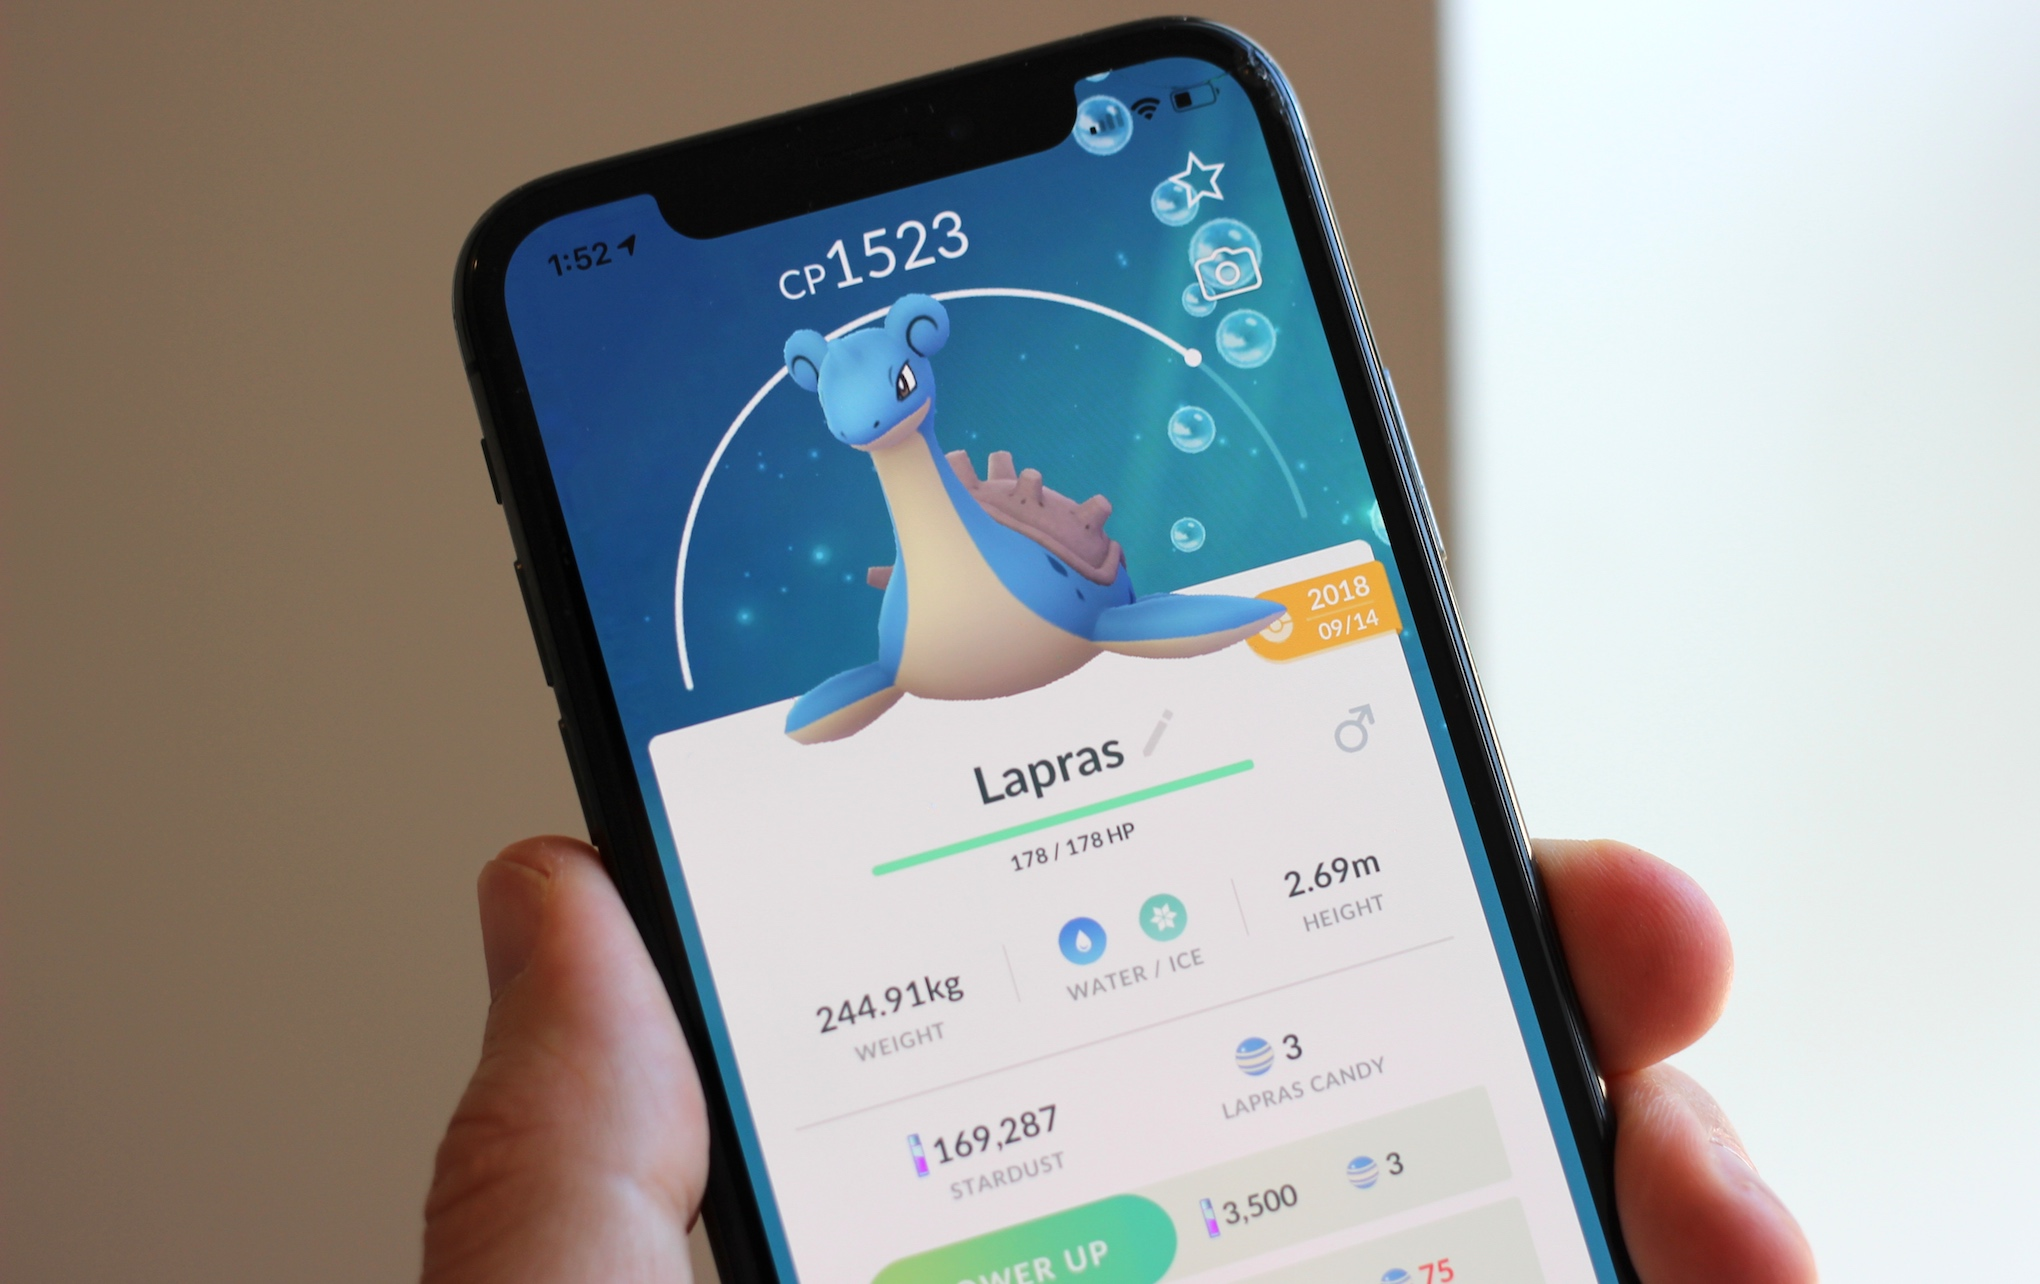 Pokémon Go Lapras raid guide: Counters, best movesets, and more